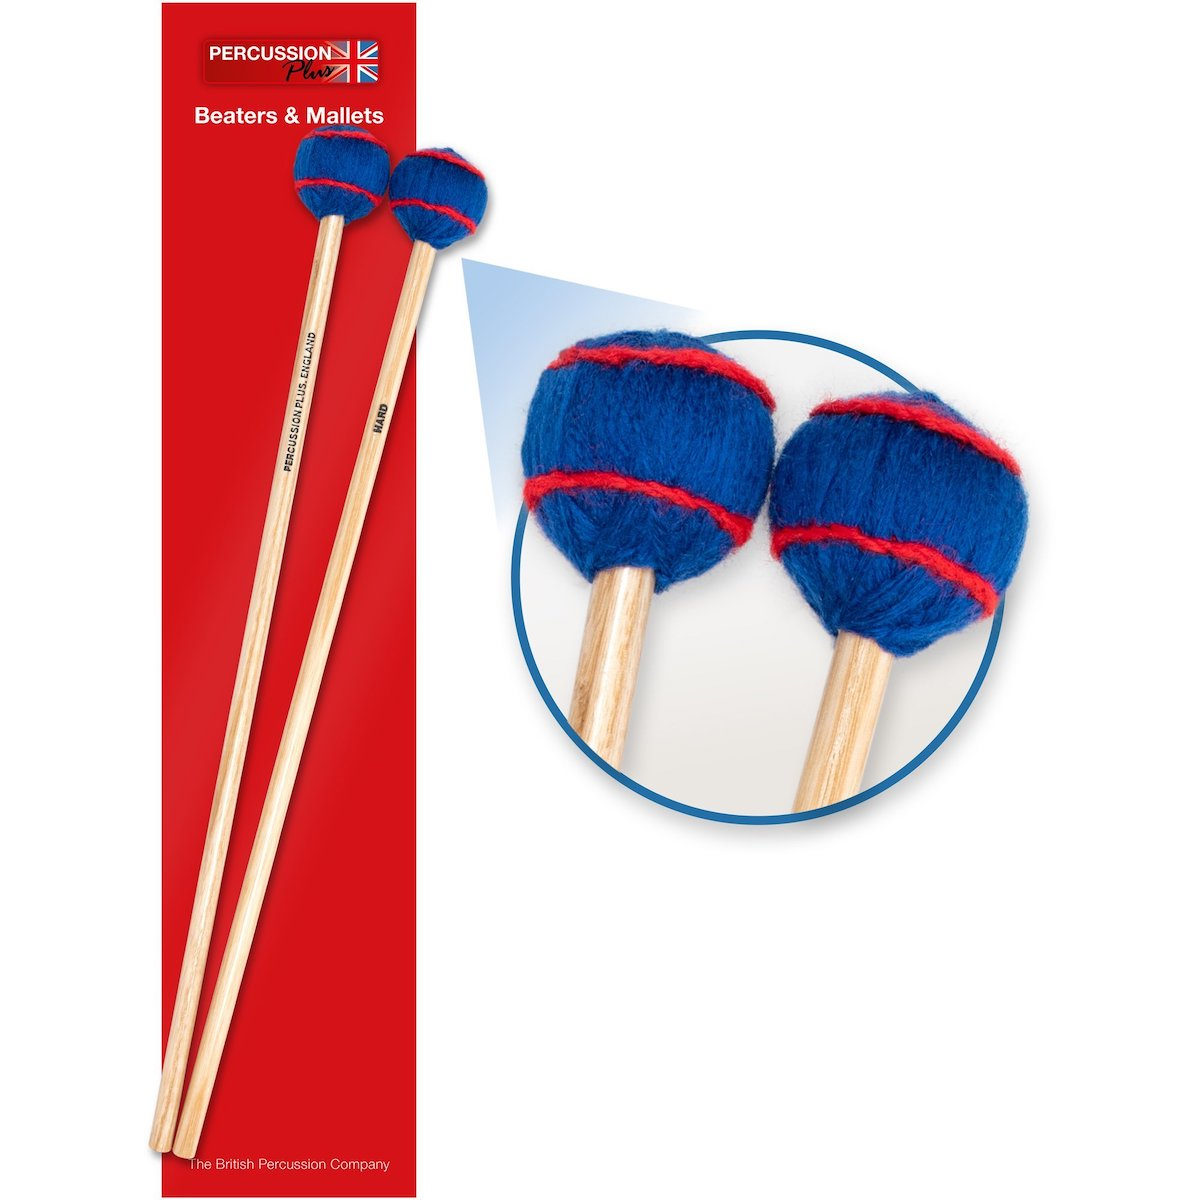 Percussion Plus Pair of Mallets - Hard